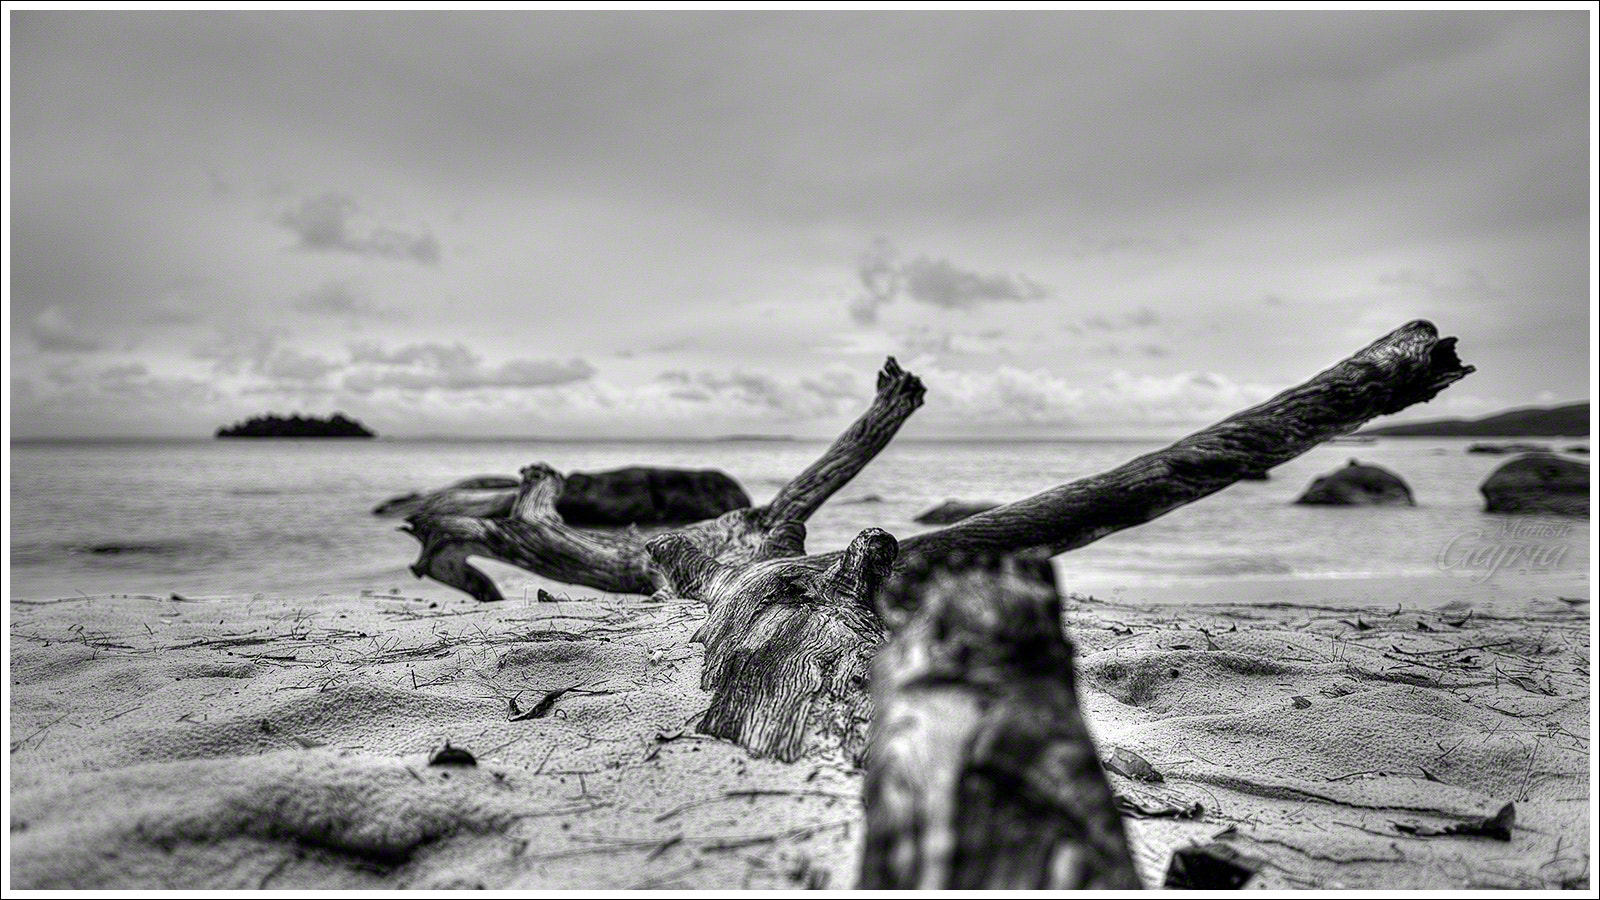 Photograph Drift Wood at the Beach by Manish Gajria on 500px